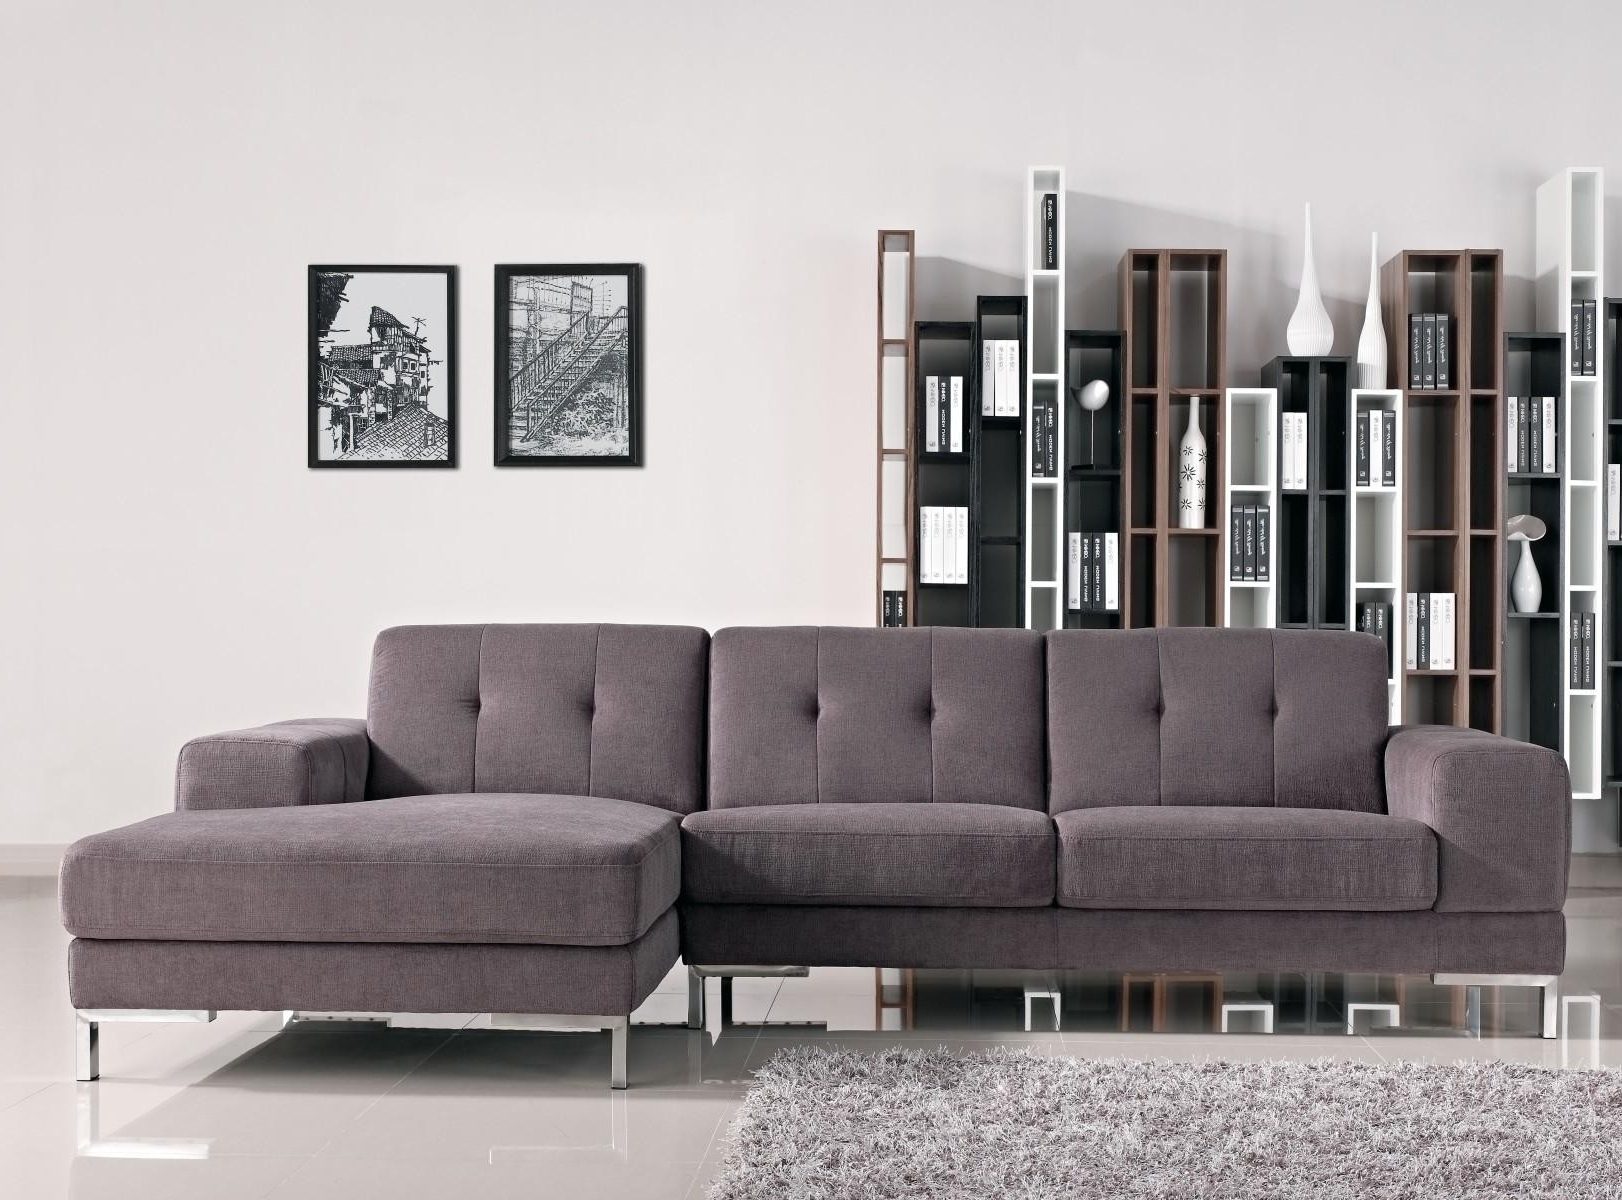 Trendy Furniture : Couch Tuner Reviews Futon Furniture In Hawaii Futon Intended For Hawaii Sectional Sofas (View 14 of 15)